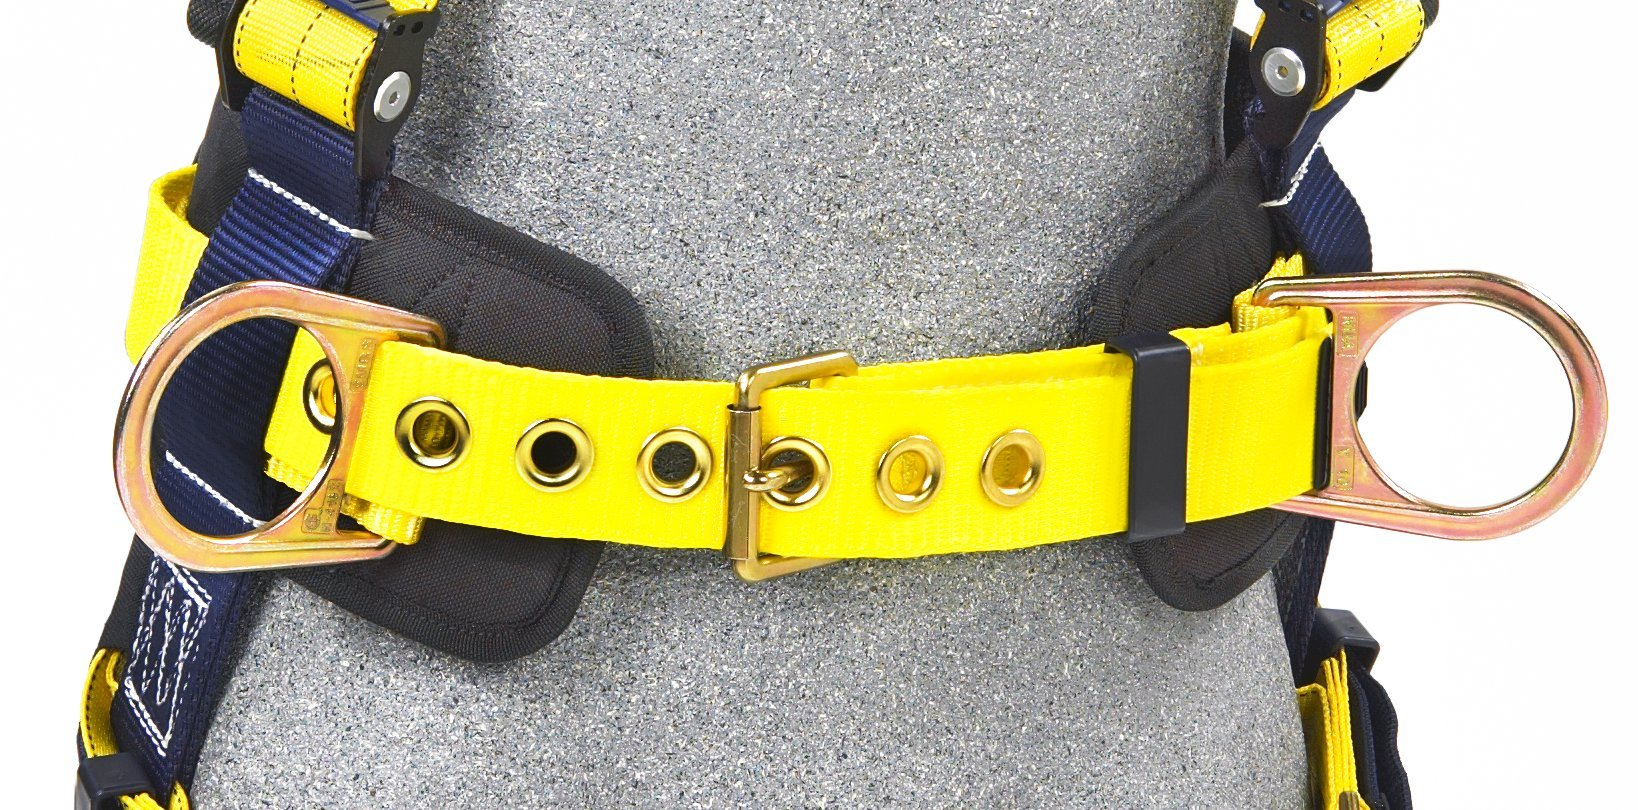 3M DBI-SALA Delta 1101654 Construction Harness, Back/Side D-Rings, Belt w/Sewn-In Back & Shoulder Pads, Tongue Buckle Leg Straps, Medium, Navy/Yellow by 3M Fall Protection Business (Image #3)